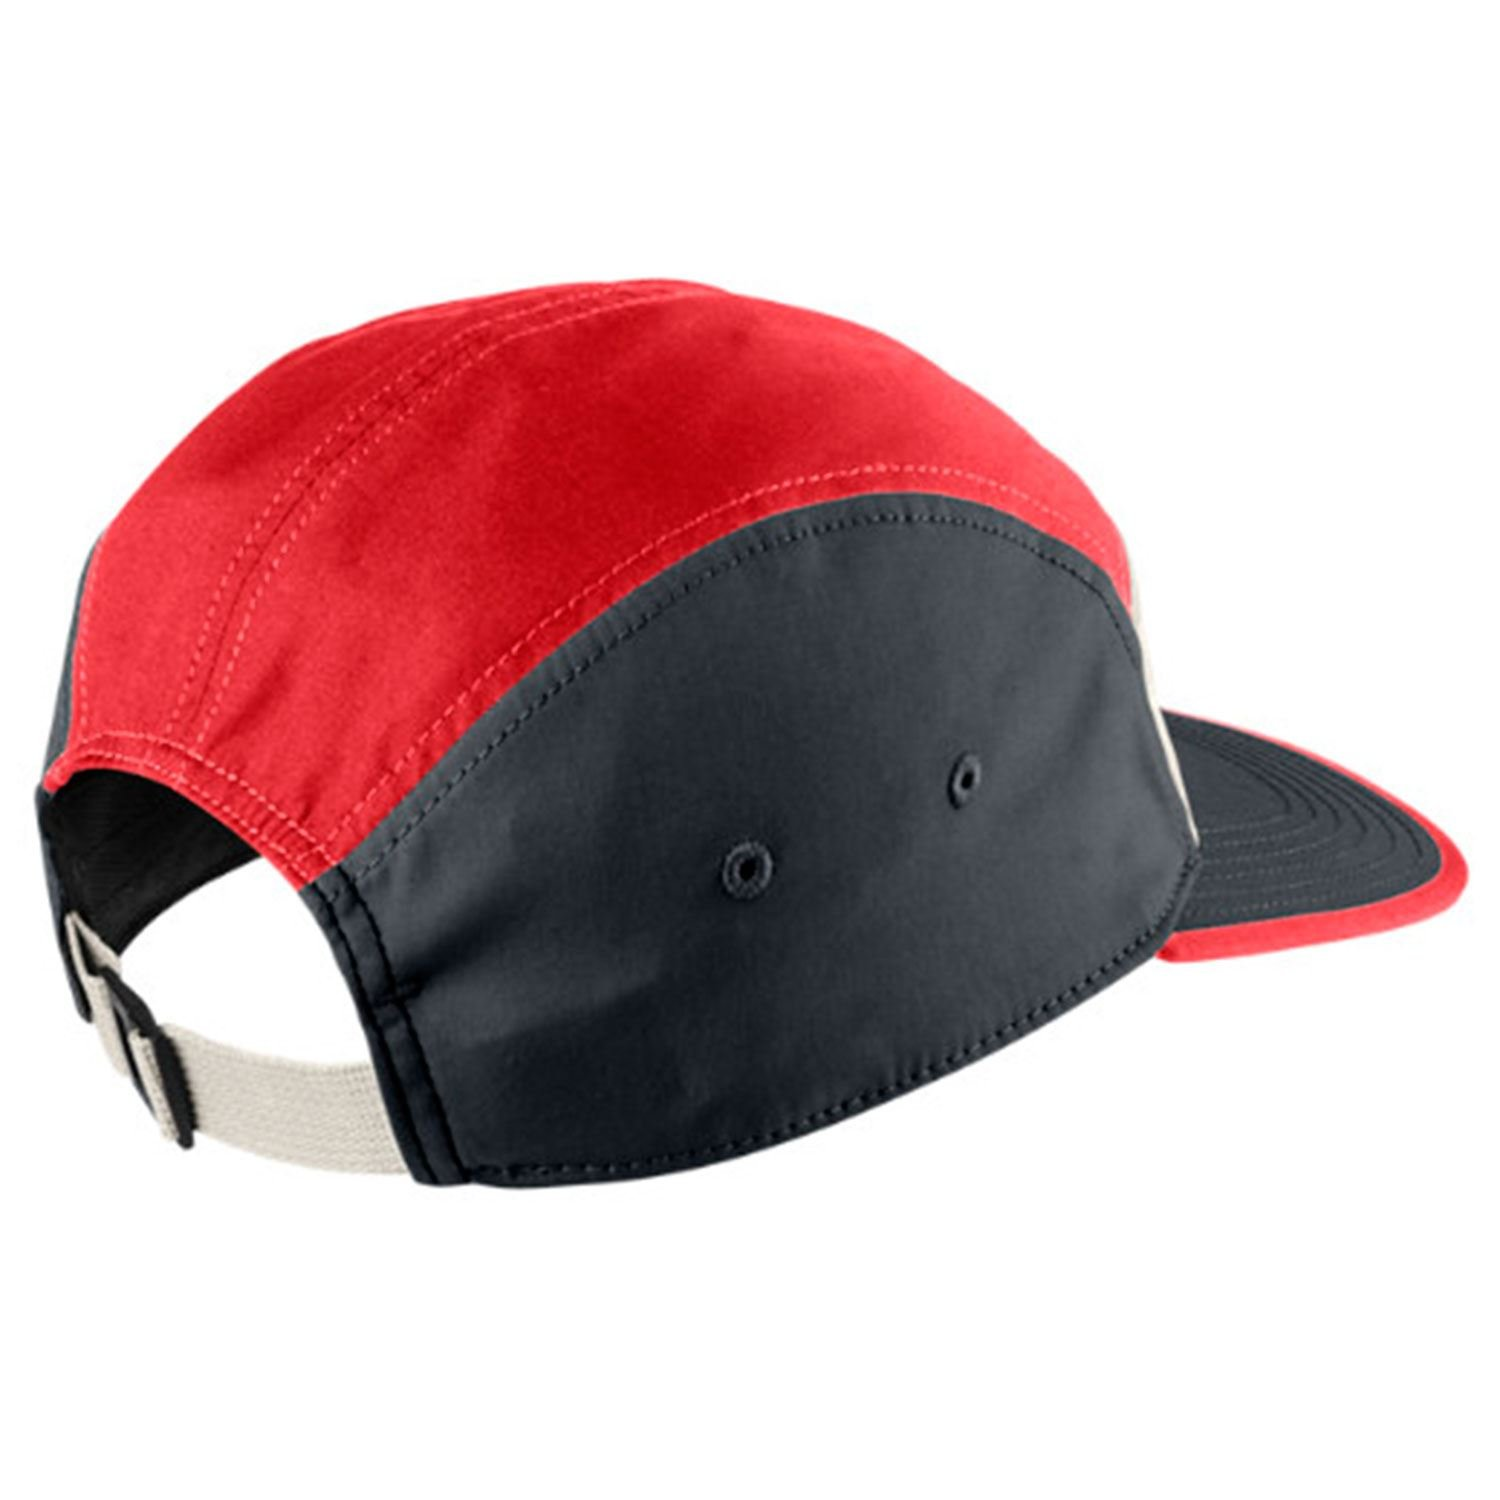 abba73040fc2d Nike SB Men's Blocked 5 Panel Hat OS Crimson: Amazon.co.uk: Clothing